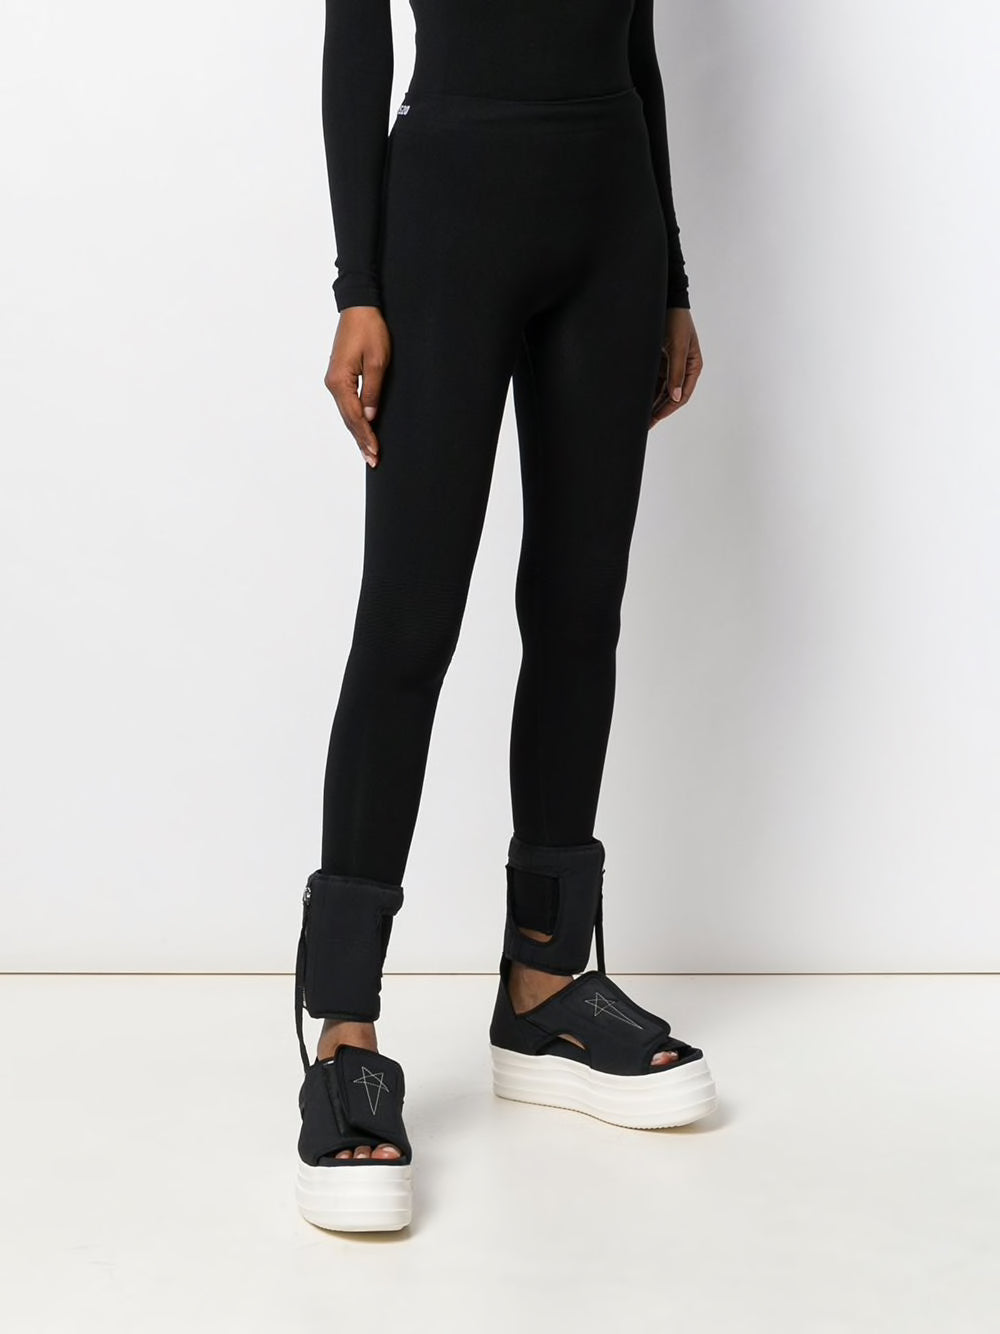 RICK OWENS WOMEN SPORT LEGGINGS